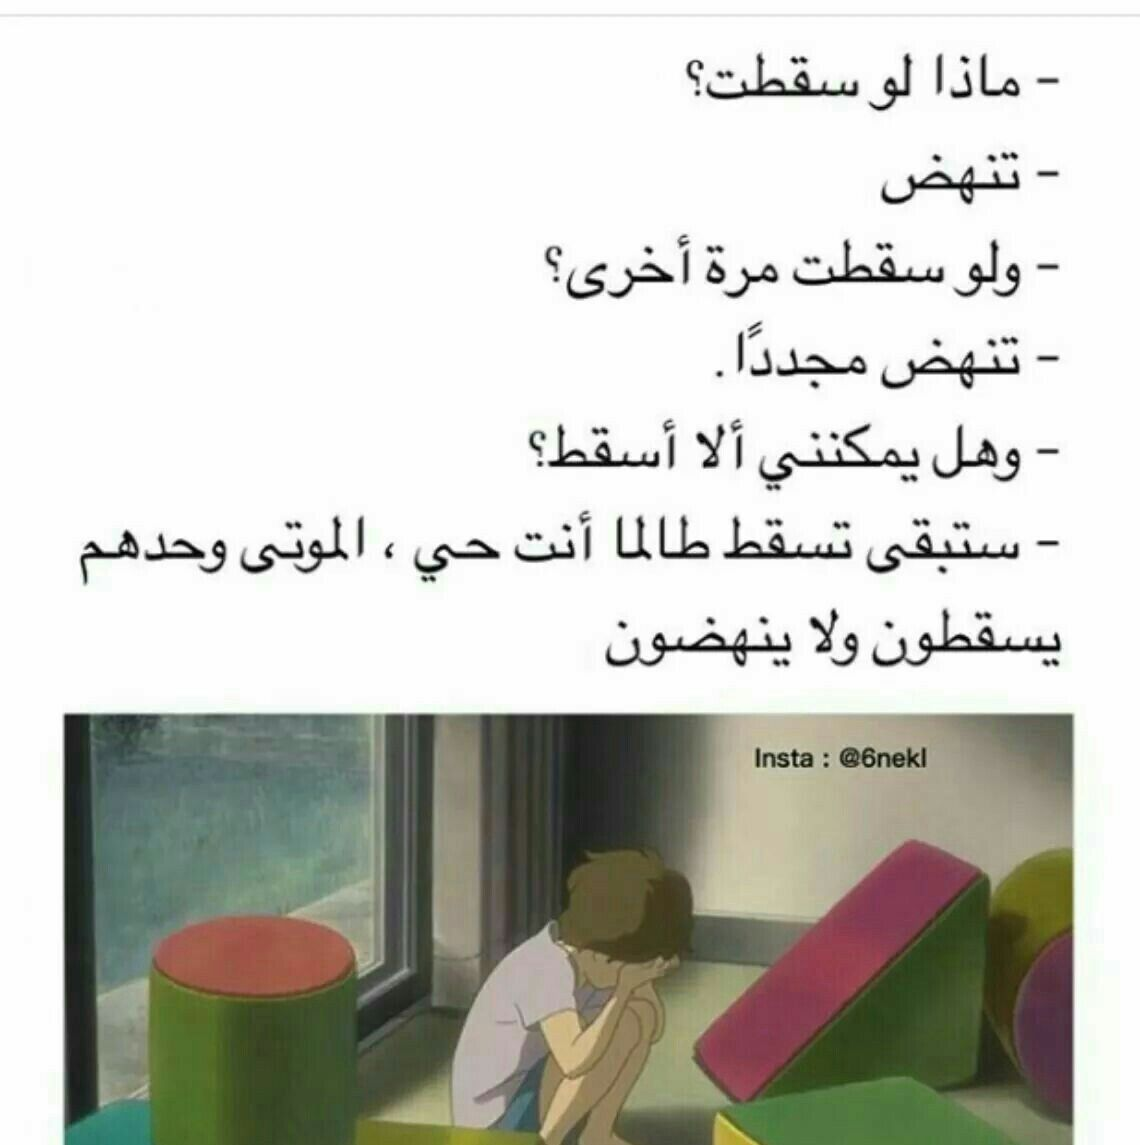 Pin By Chef In Disguise On إليك يا وجعي يا وجع الذكريات Words Quotes Spirit Quotes Study Motivation Quotes